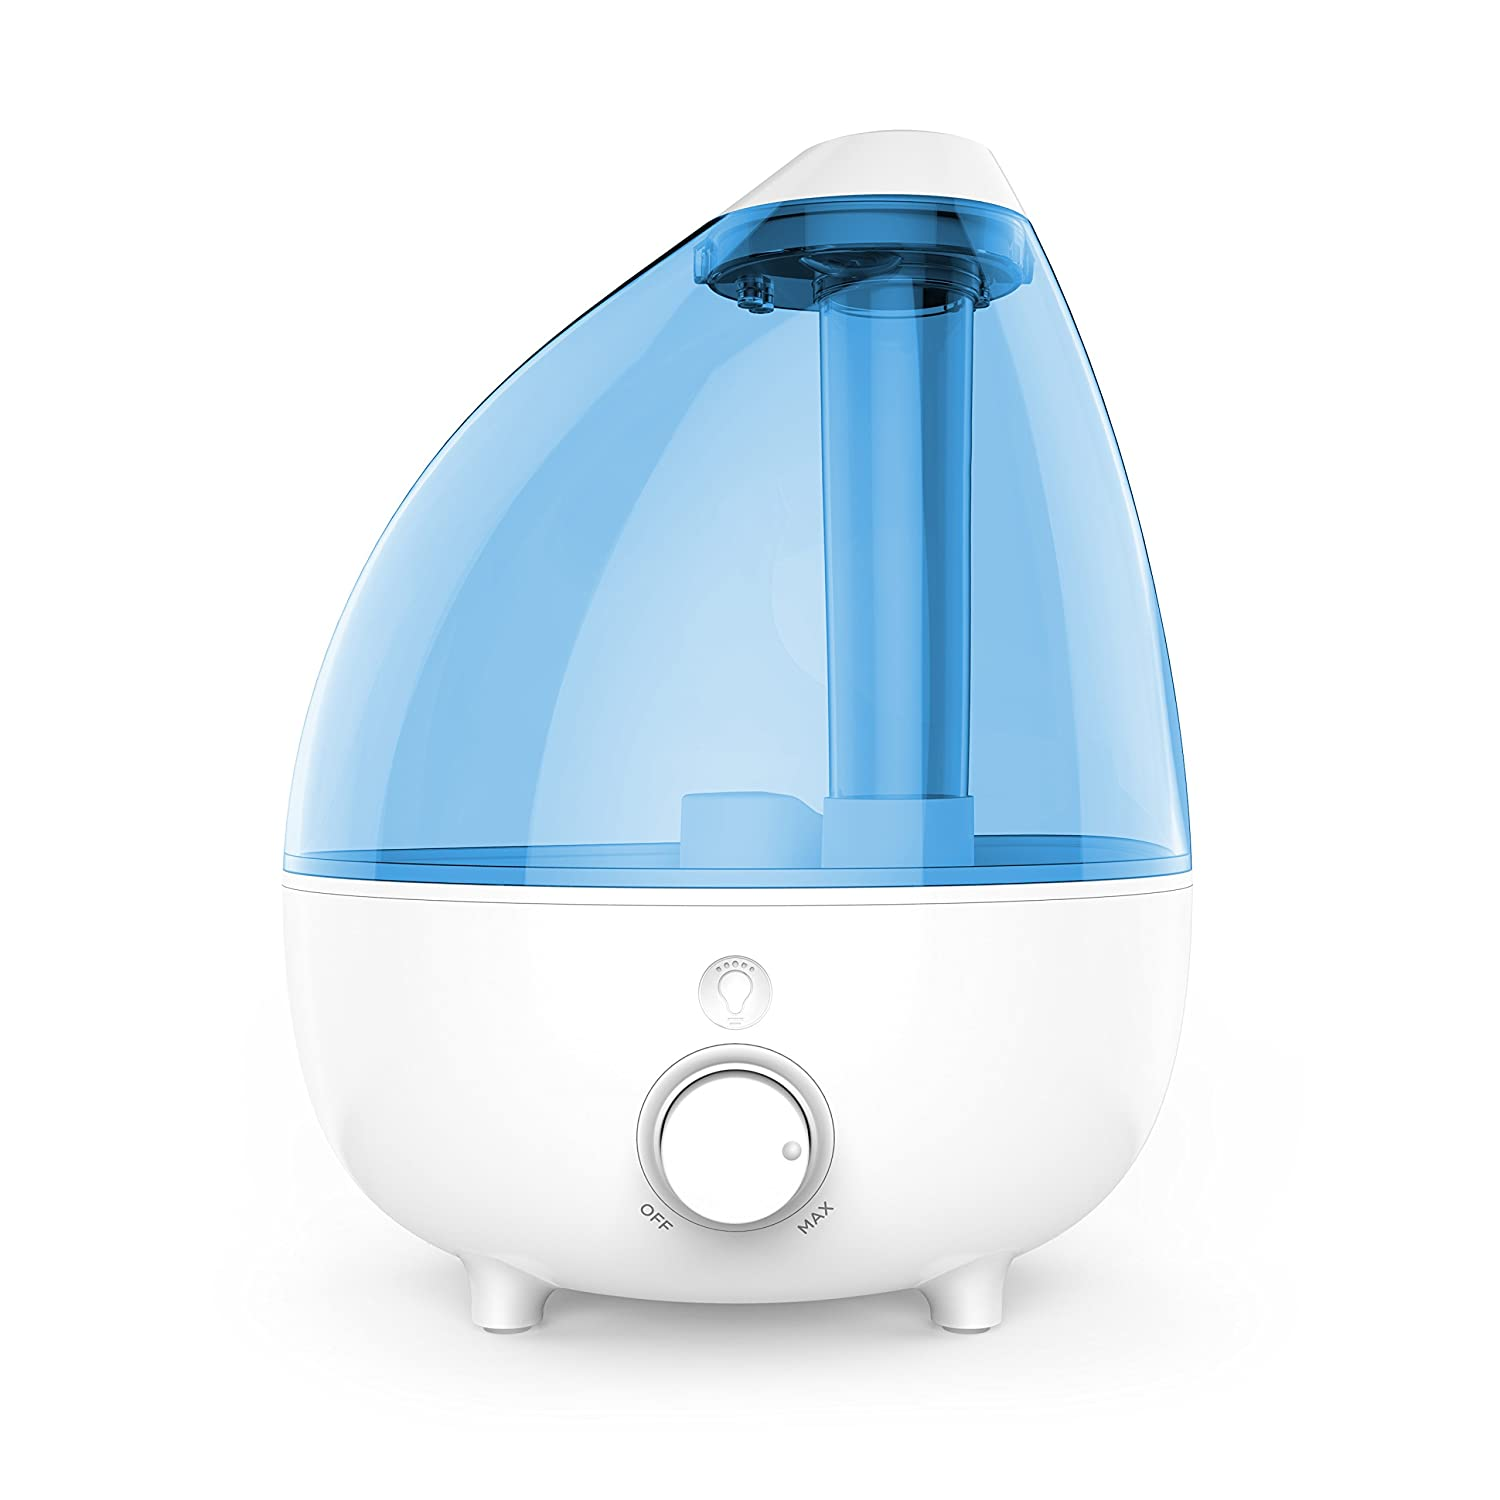 Pure Enrichment MistAire XL Ultrasonic Cool Mist Humidifier for Large Rooms – 1 Gallon Water Tank with Variable Mist Control, Automatic Shut-Off and Optional Night Light – Lasts Up to 24 Hours